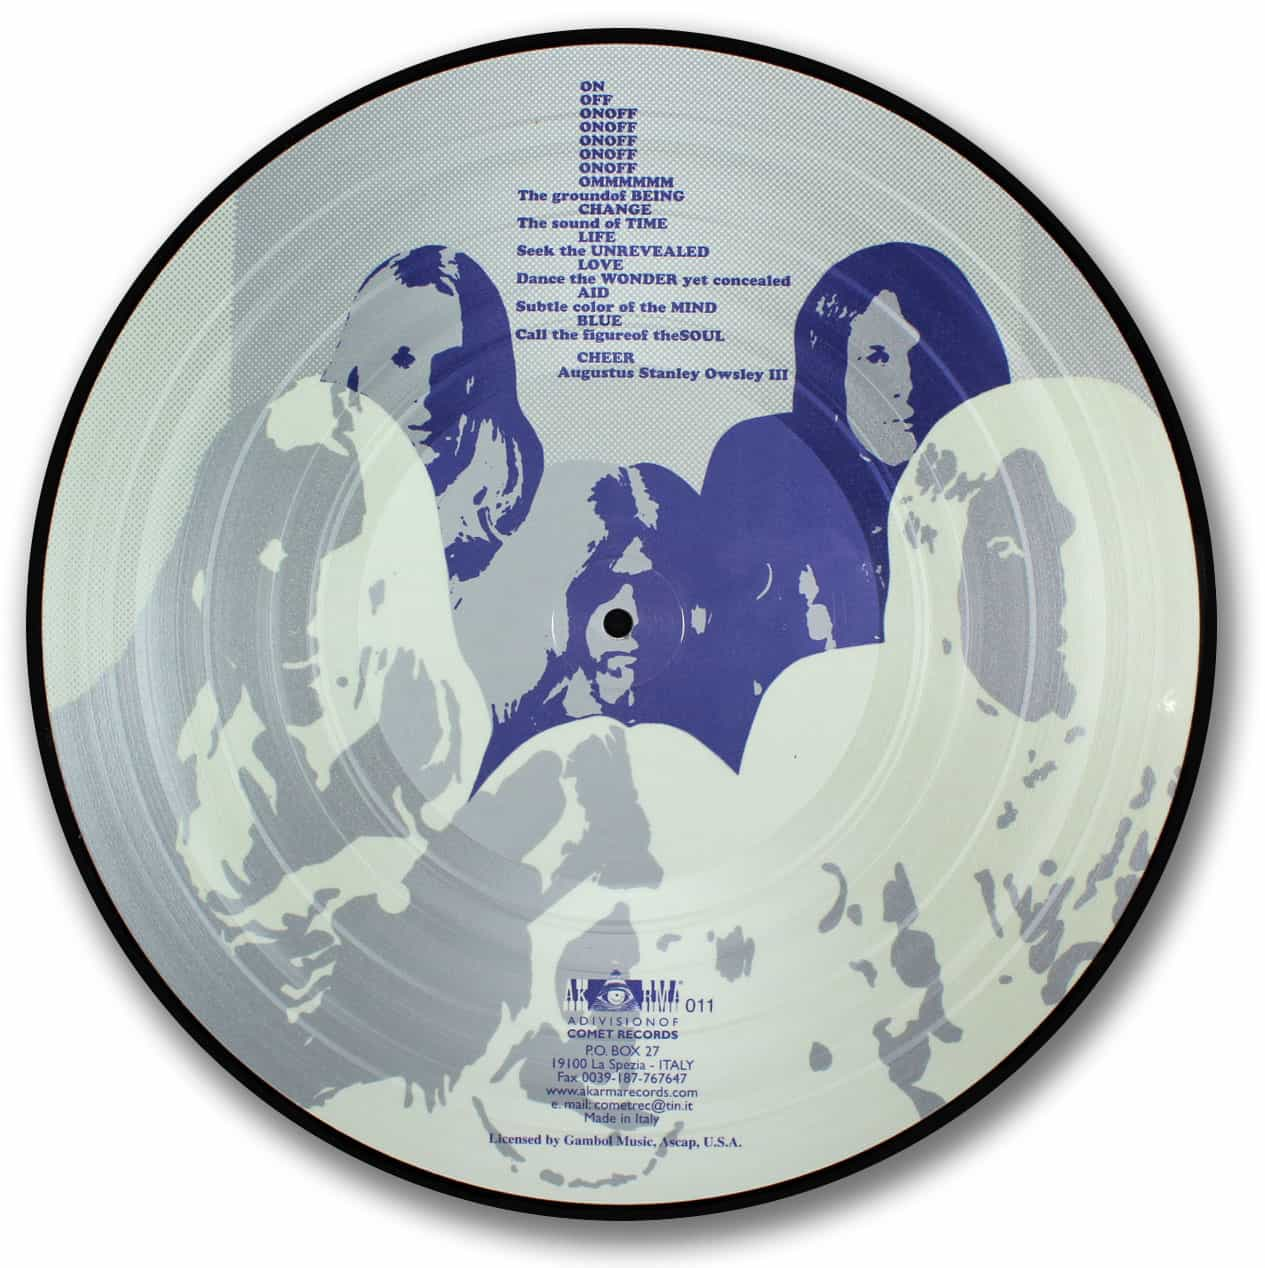 Blue Cheer, Vincebus Eruptum Picture Disc